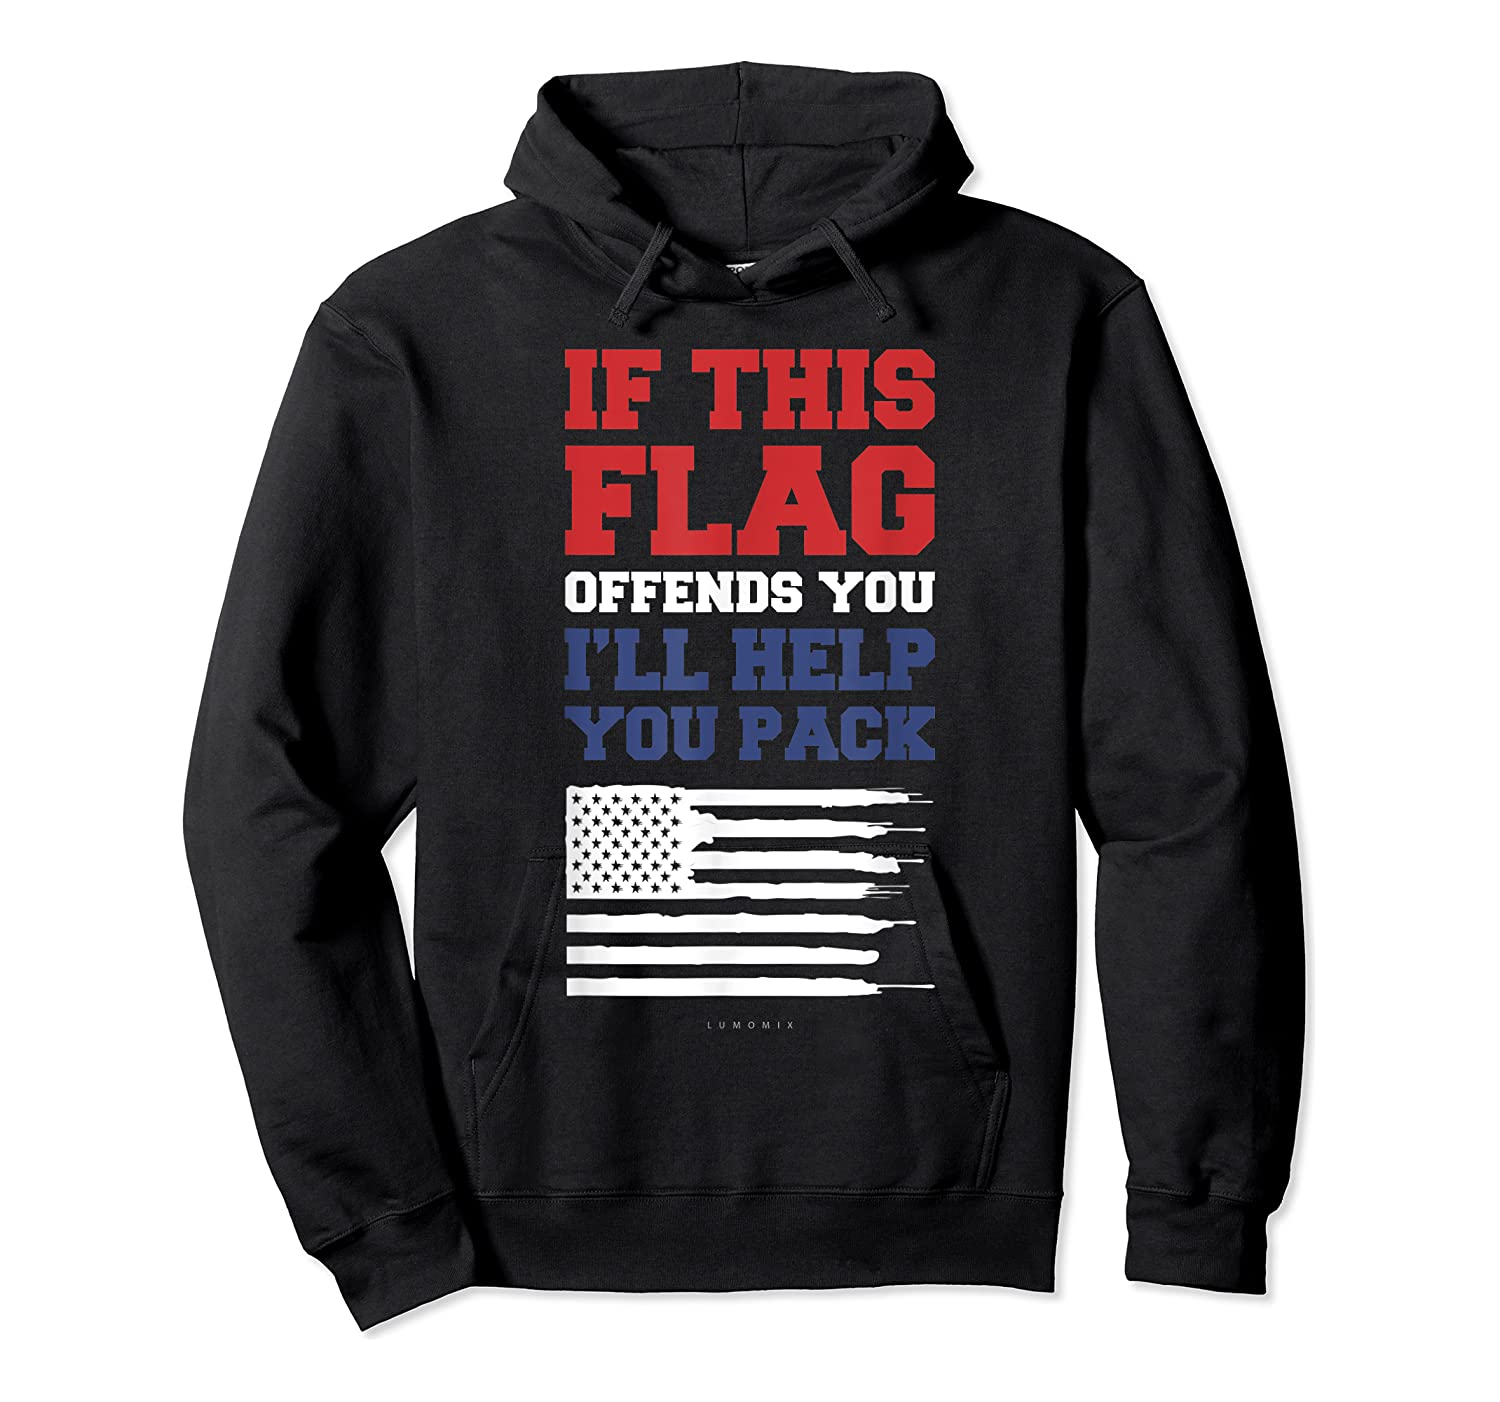 Patriotic Shirts - If This Flag Offends You Help You Pack T-shirt Unisex Pullover Hoodie